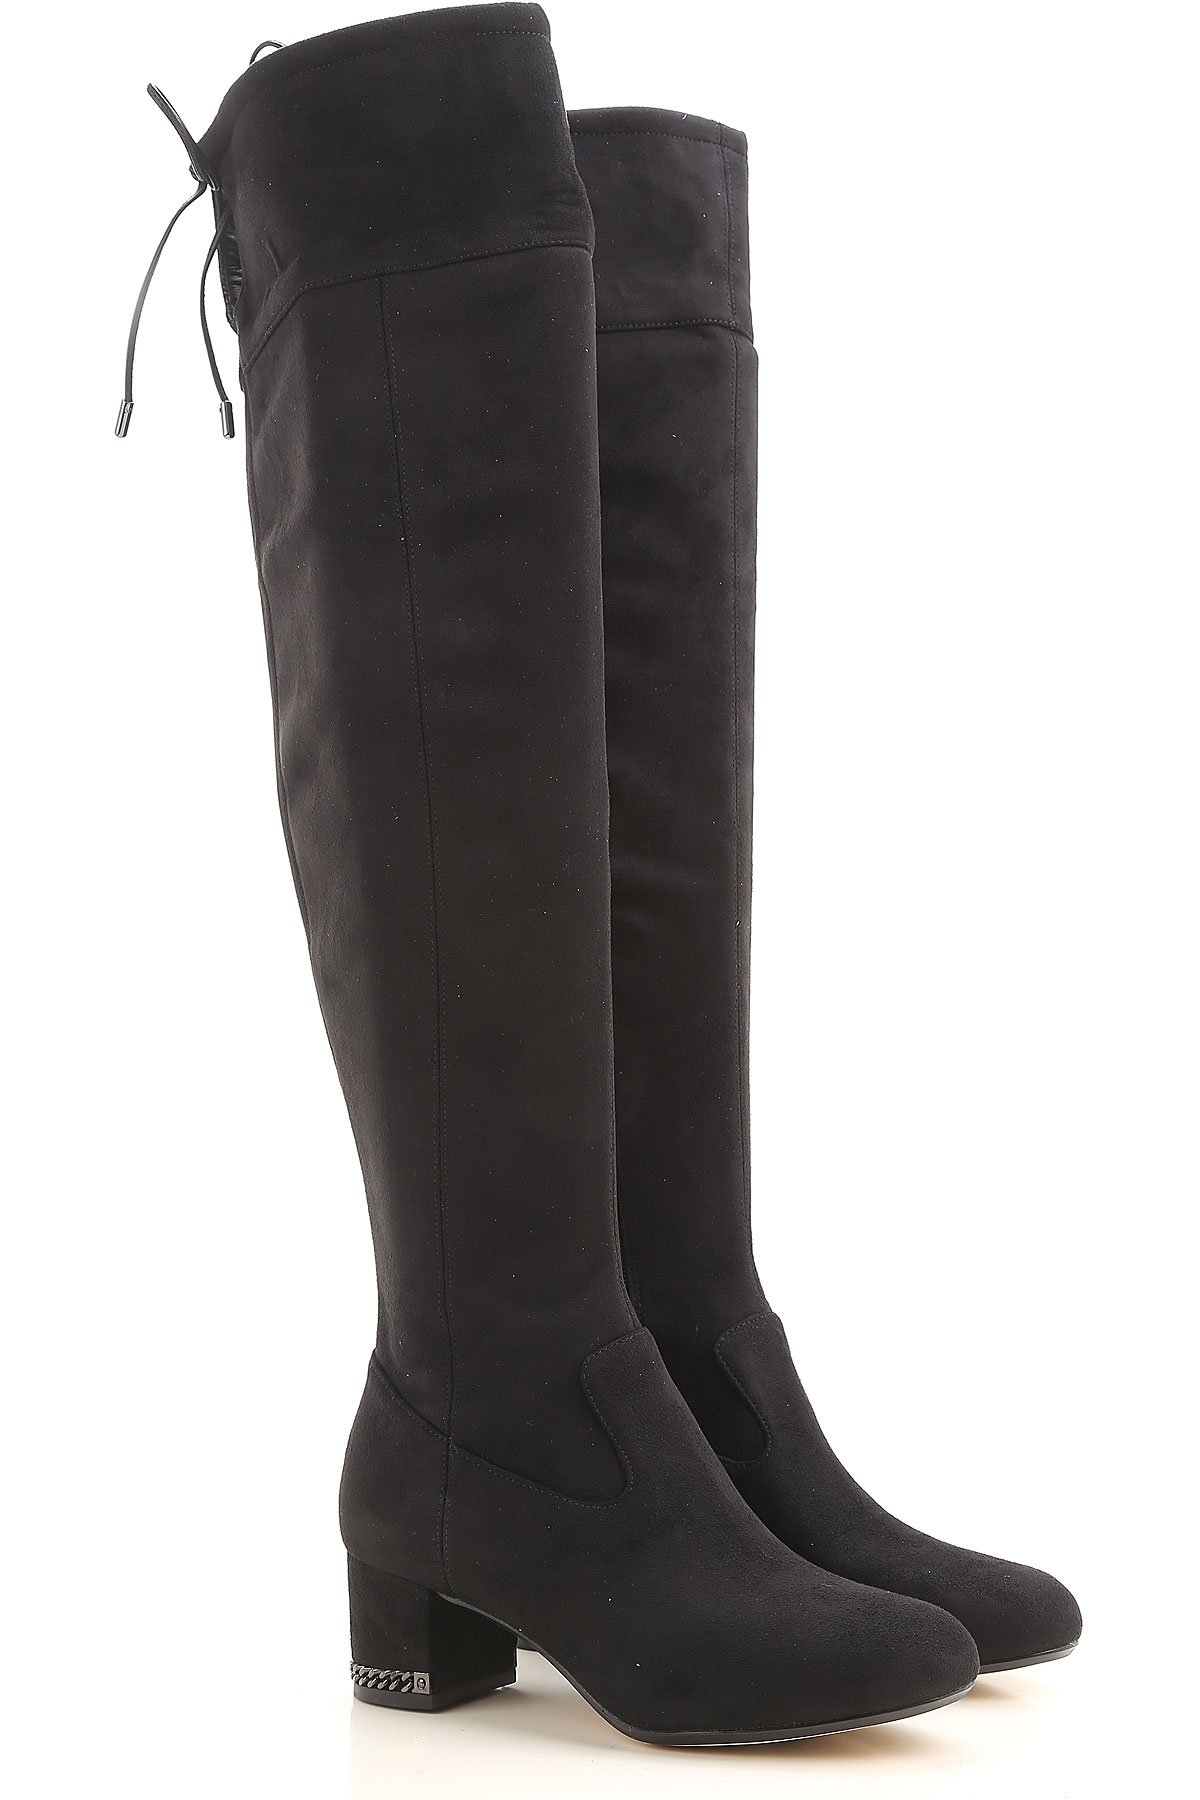 Michael Kors Boots for Women, Booties On Sale in Outlet, Black, Suede leather, 2019, 6